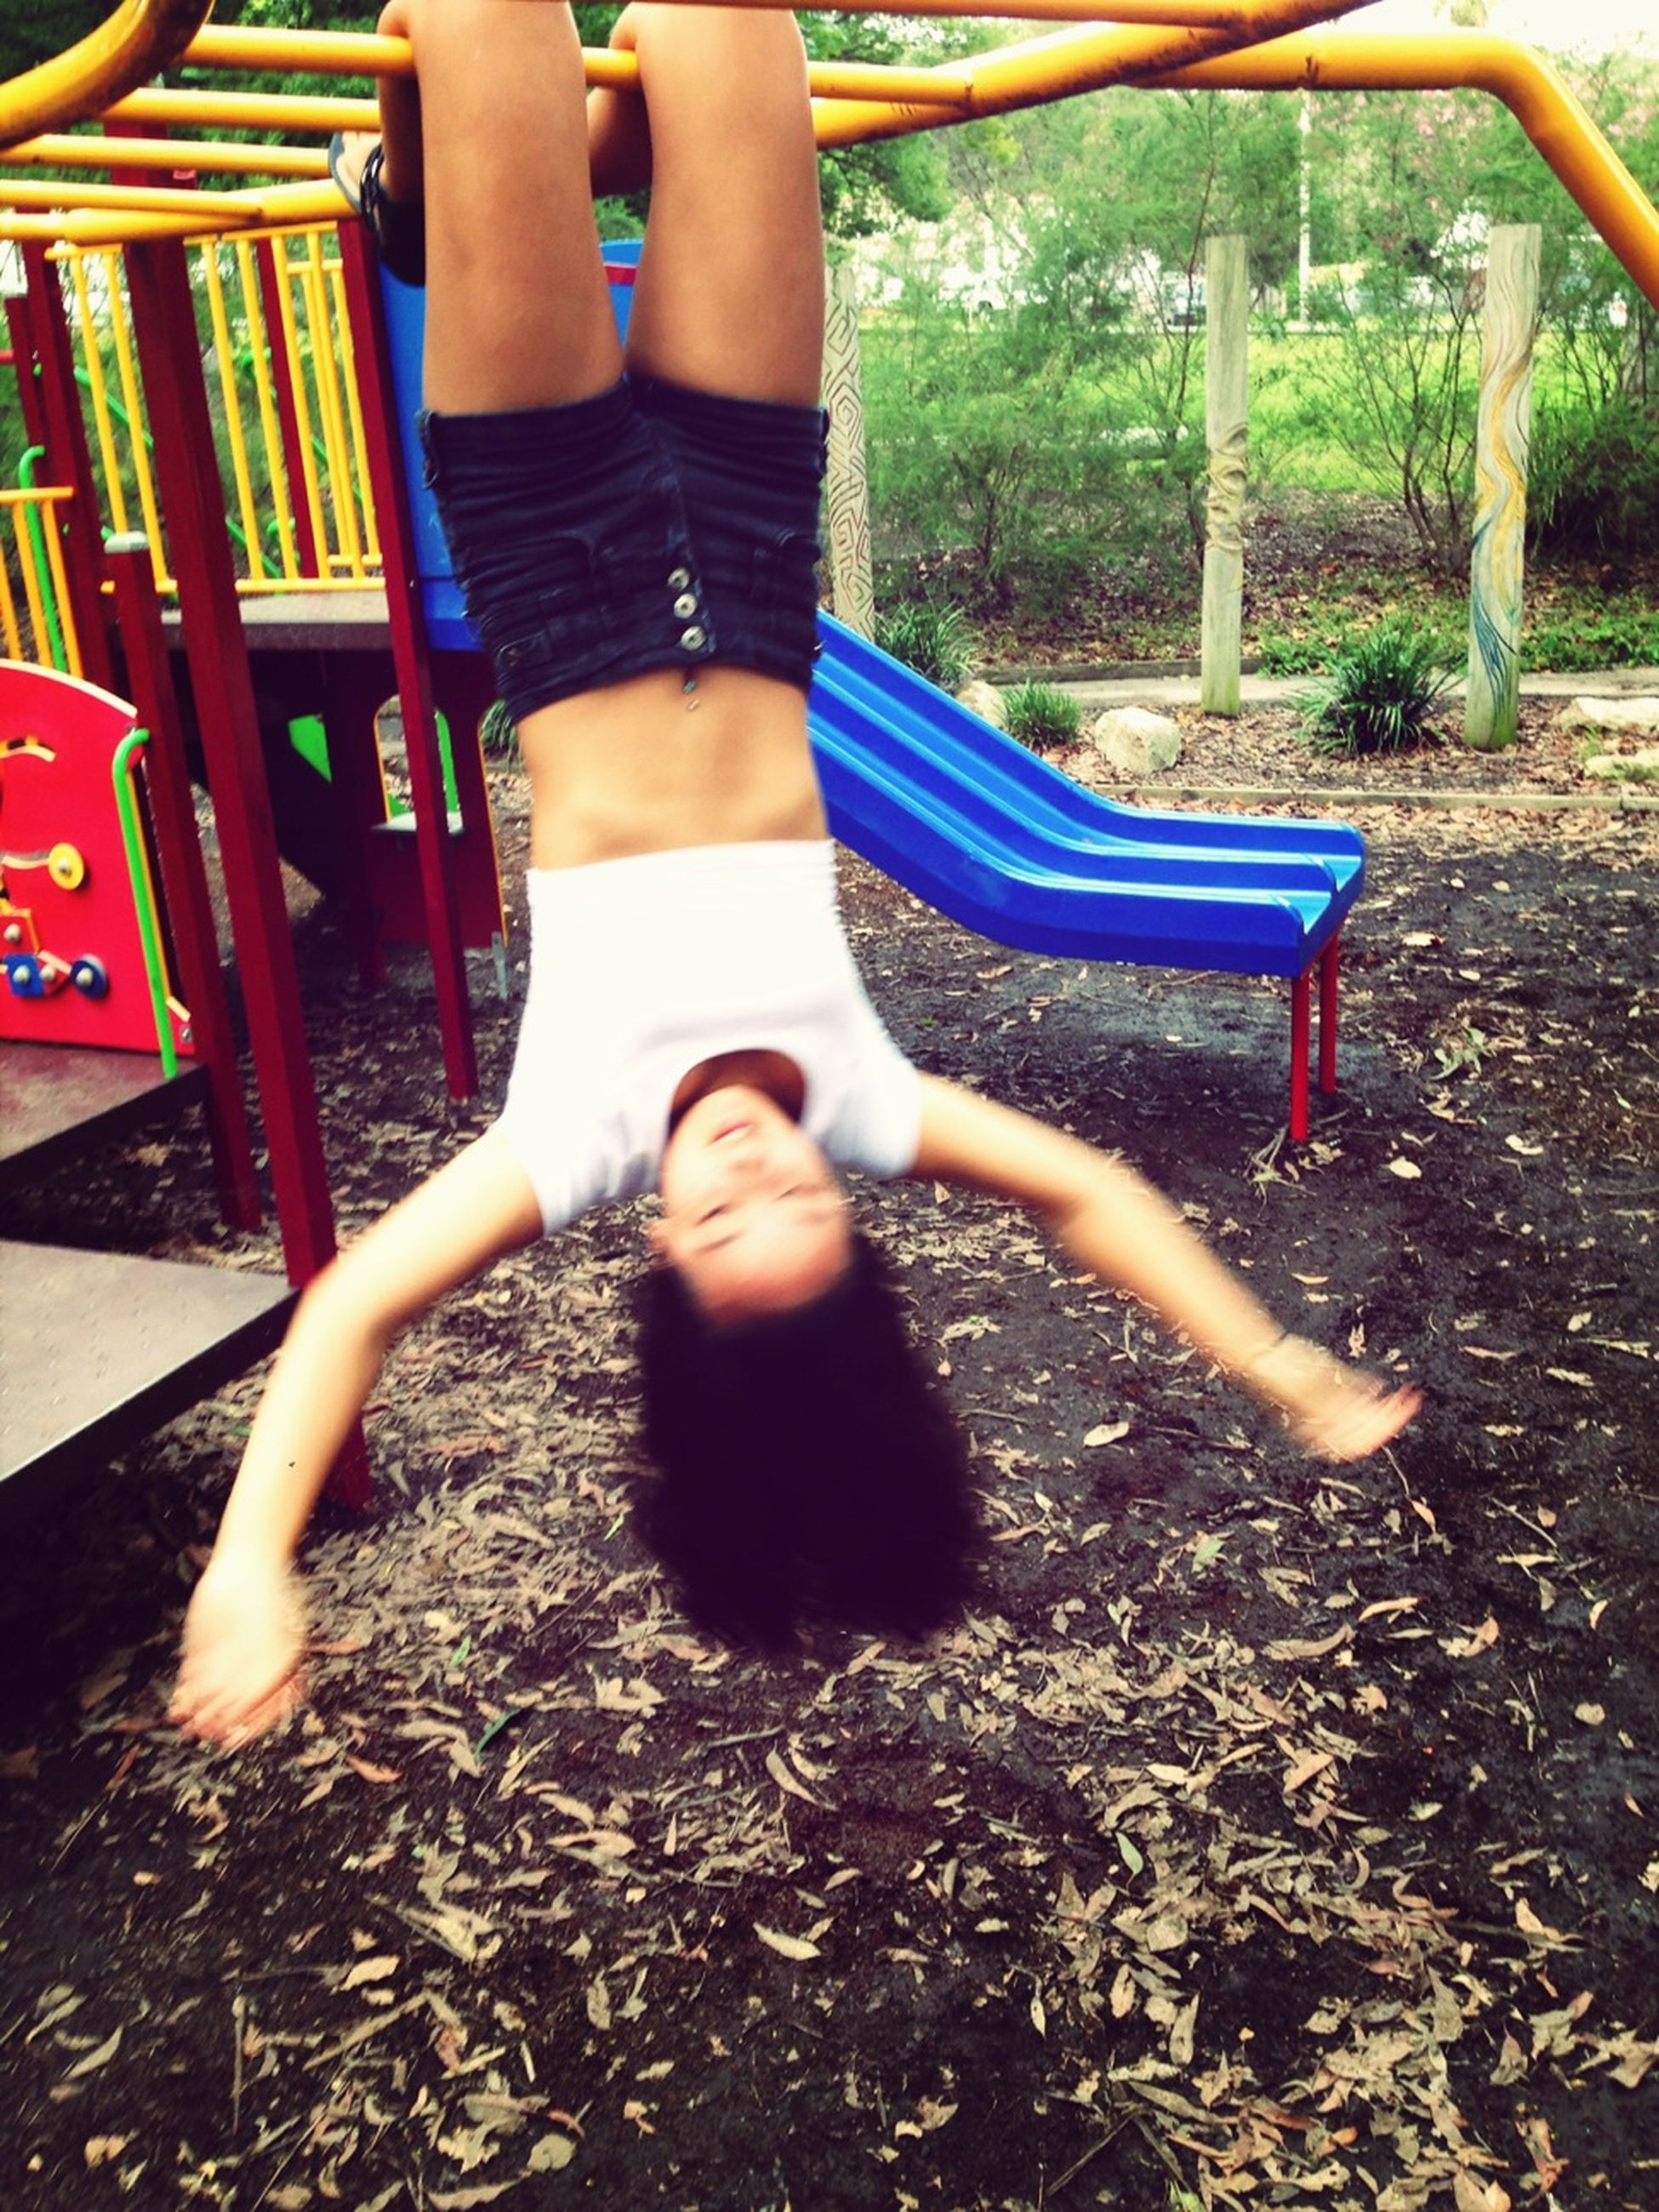 childhood, leisure activity, lifestyles, elementary age, park - man made space, person, playground, sitting, full length, casual clothing, girls, relaxation, chair, fun, boys, swing, enjoyment, playful